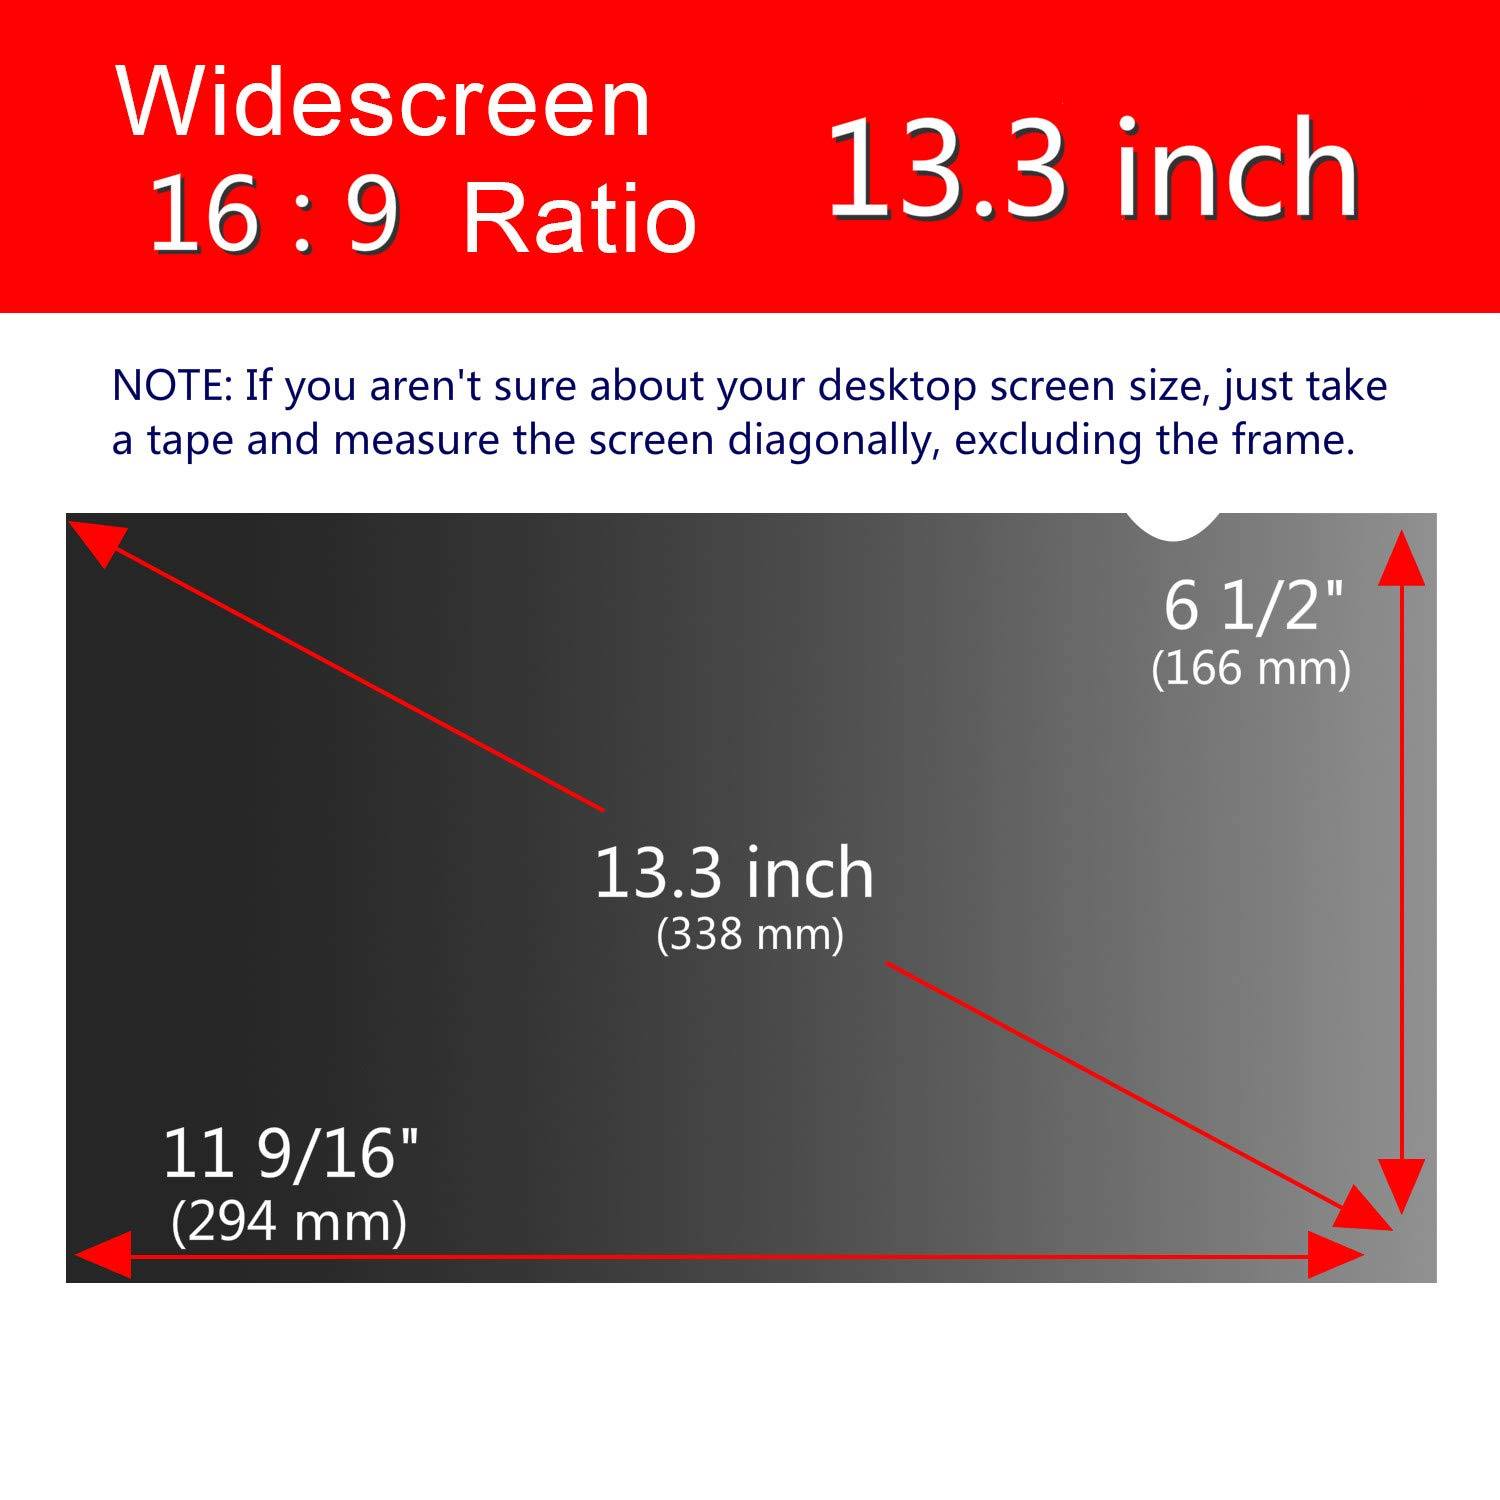 Anti-Spy/&Glare Film for 19 inch Square Computer Monitor 19, 5:4 Aspect Ratio Magicmoon Privacy Filter Screen Protector